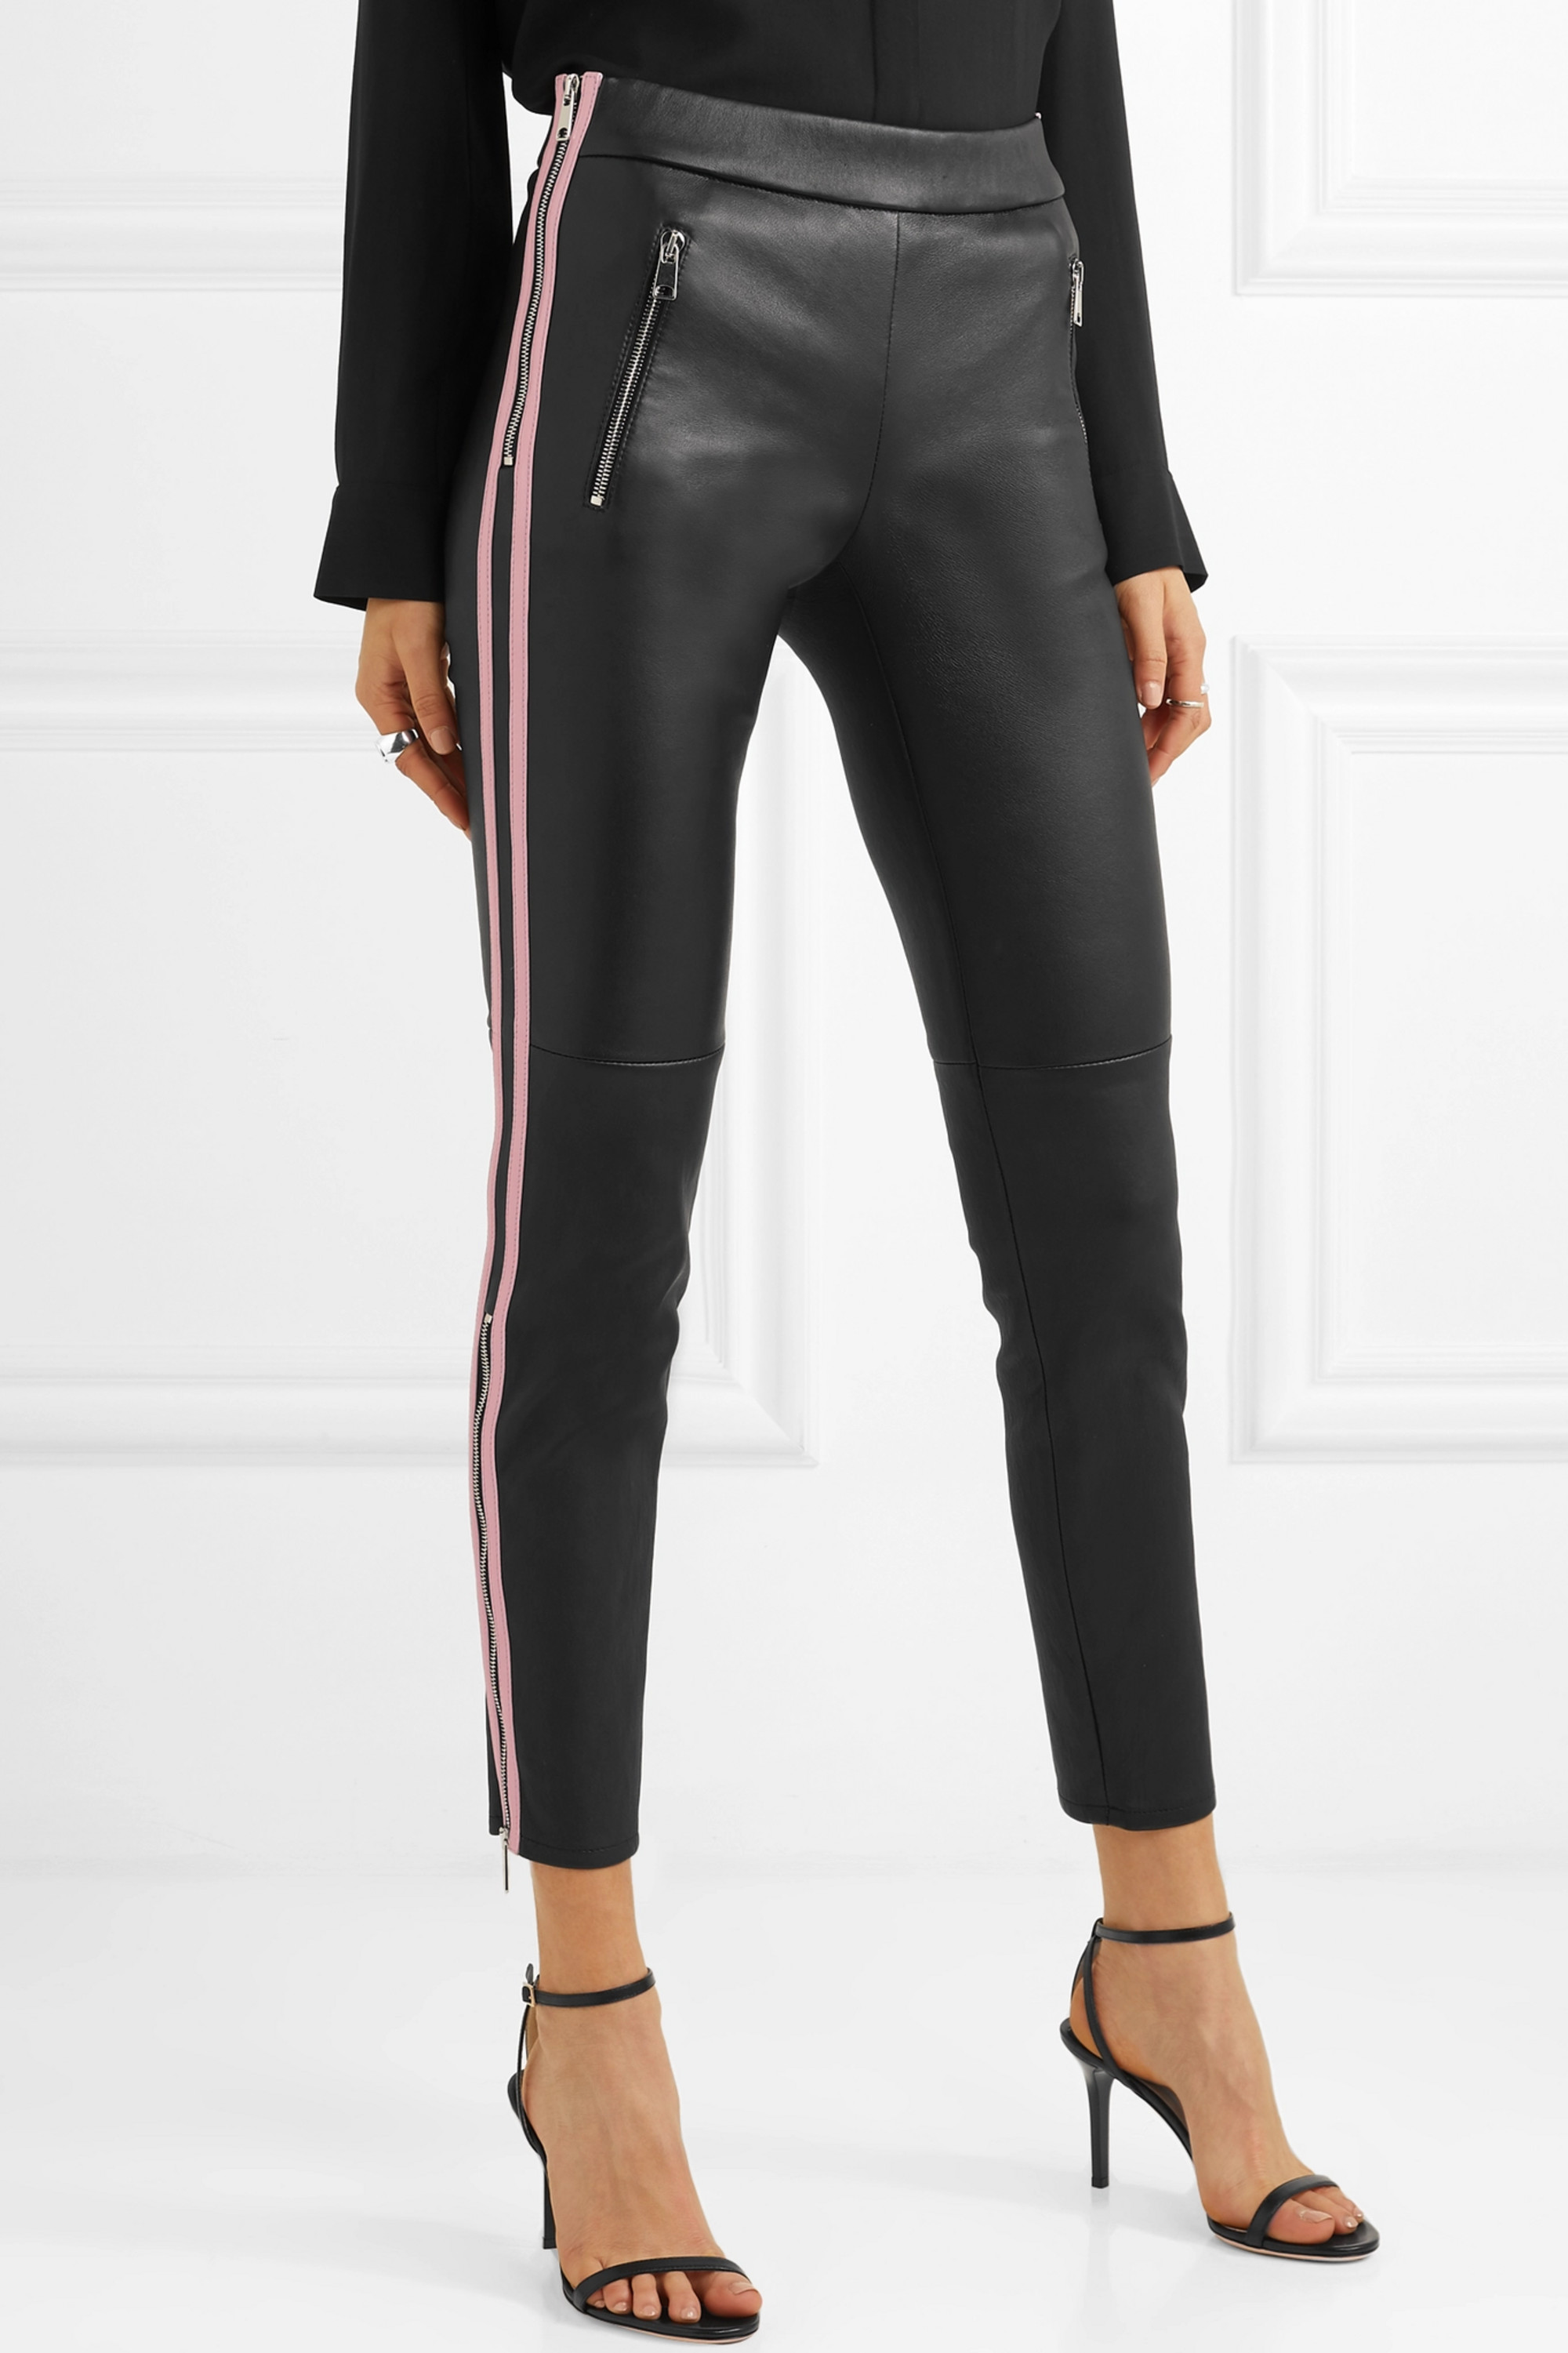 Alexander McQueen Two-tone leather skinny pants